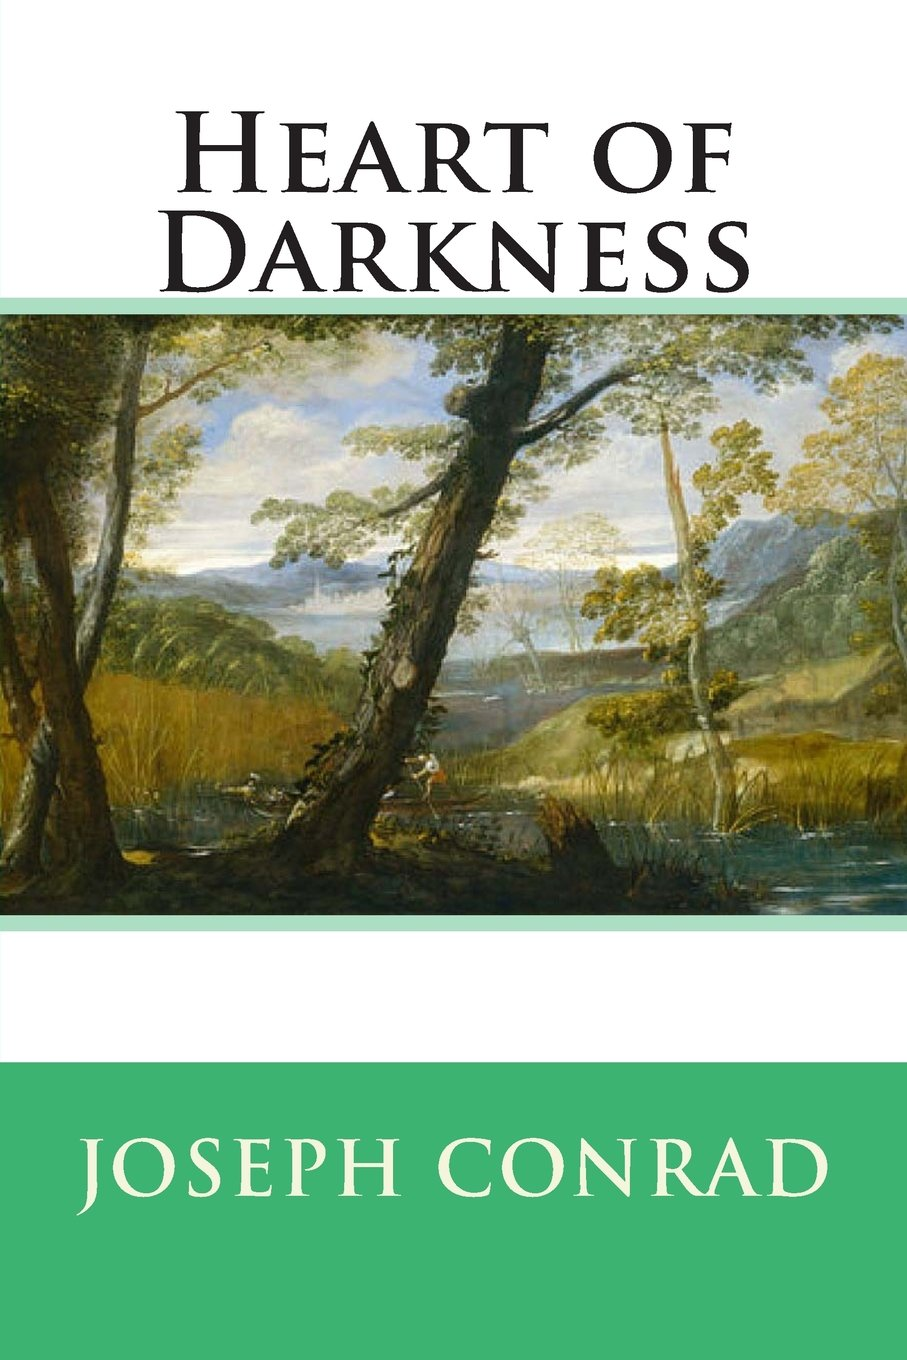 comparing joseph conrad and charles marlow s A literary criticism of the book heart of darkness by joseph conrad is presented it examines the 1st narrative of the novel's protagonist, charles marlow.